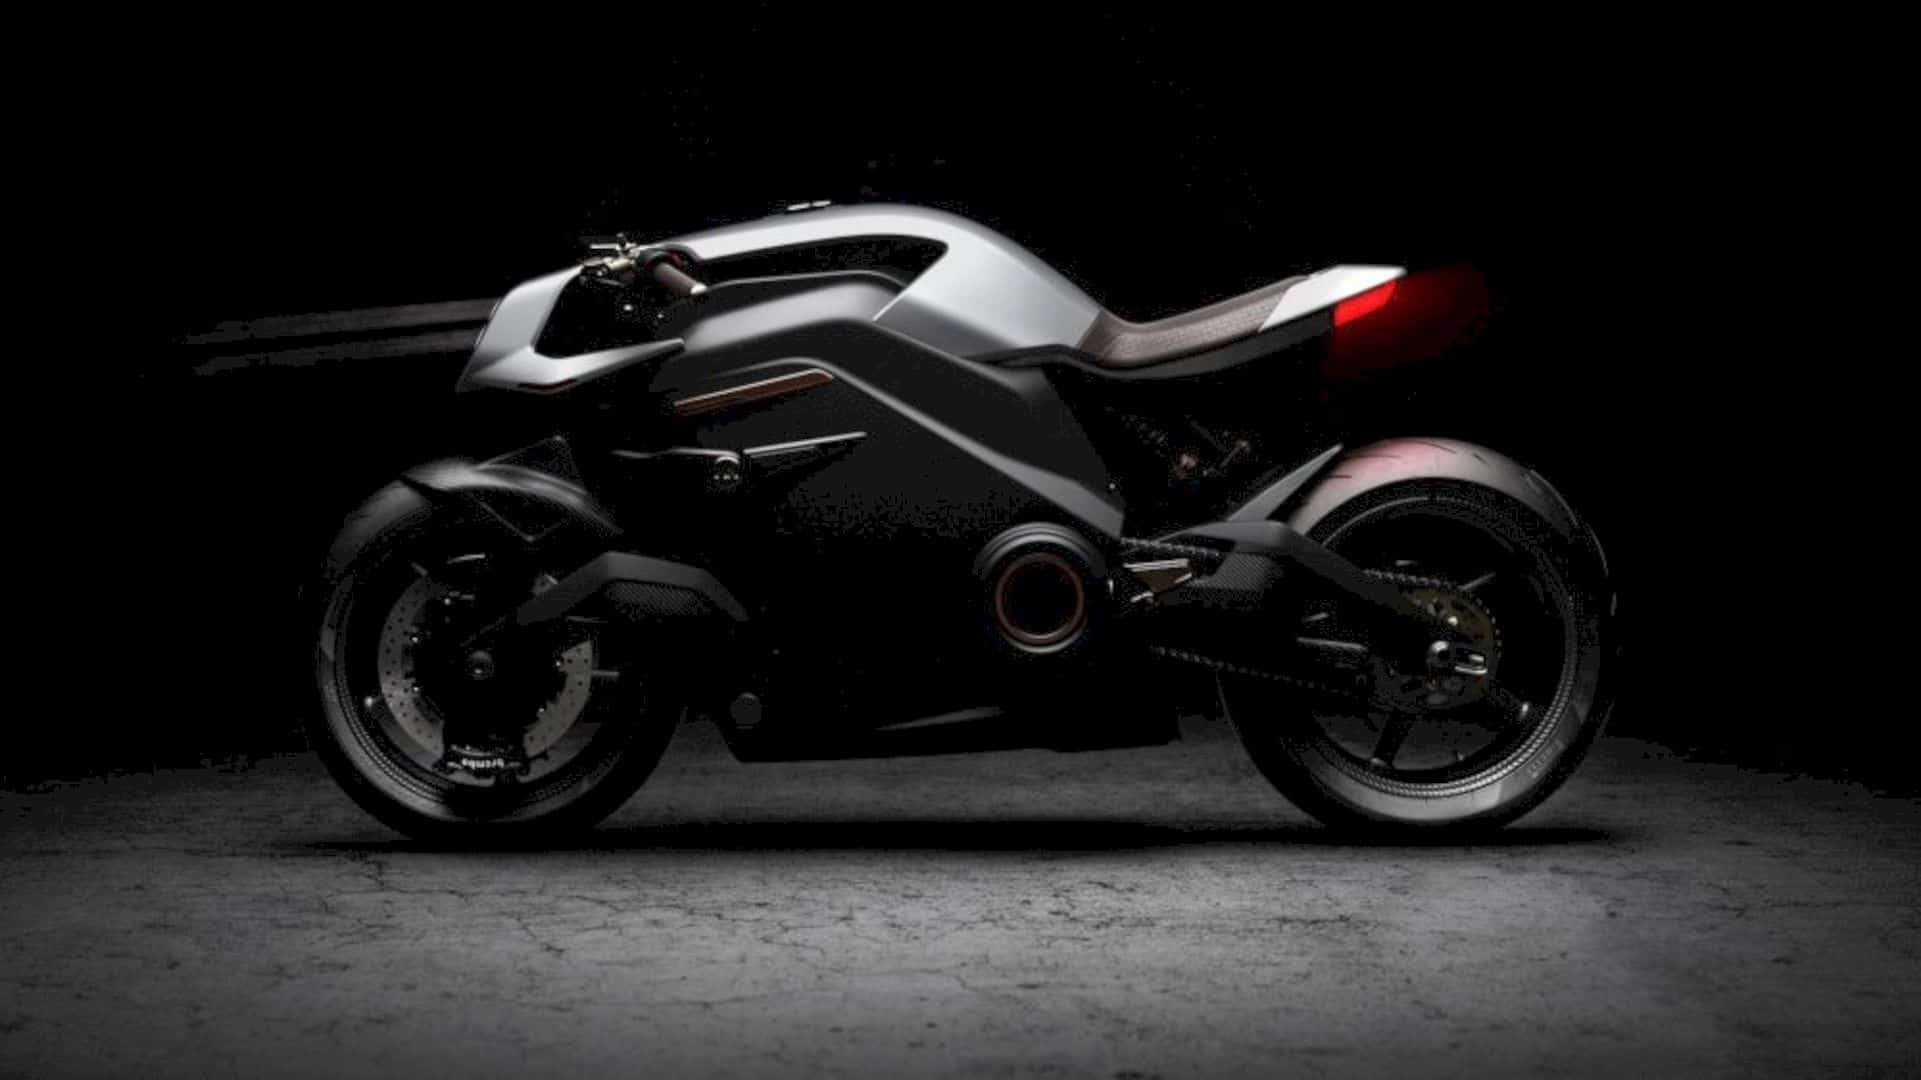 Arc Vector: The World's First Fully Electric Neo-Cafe Racer